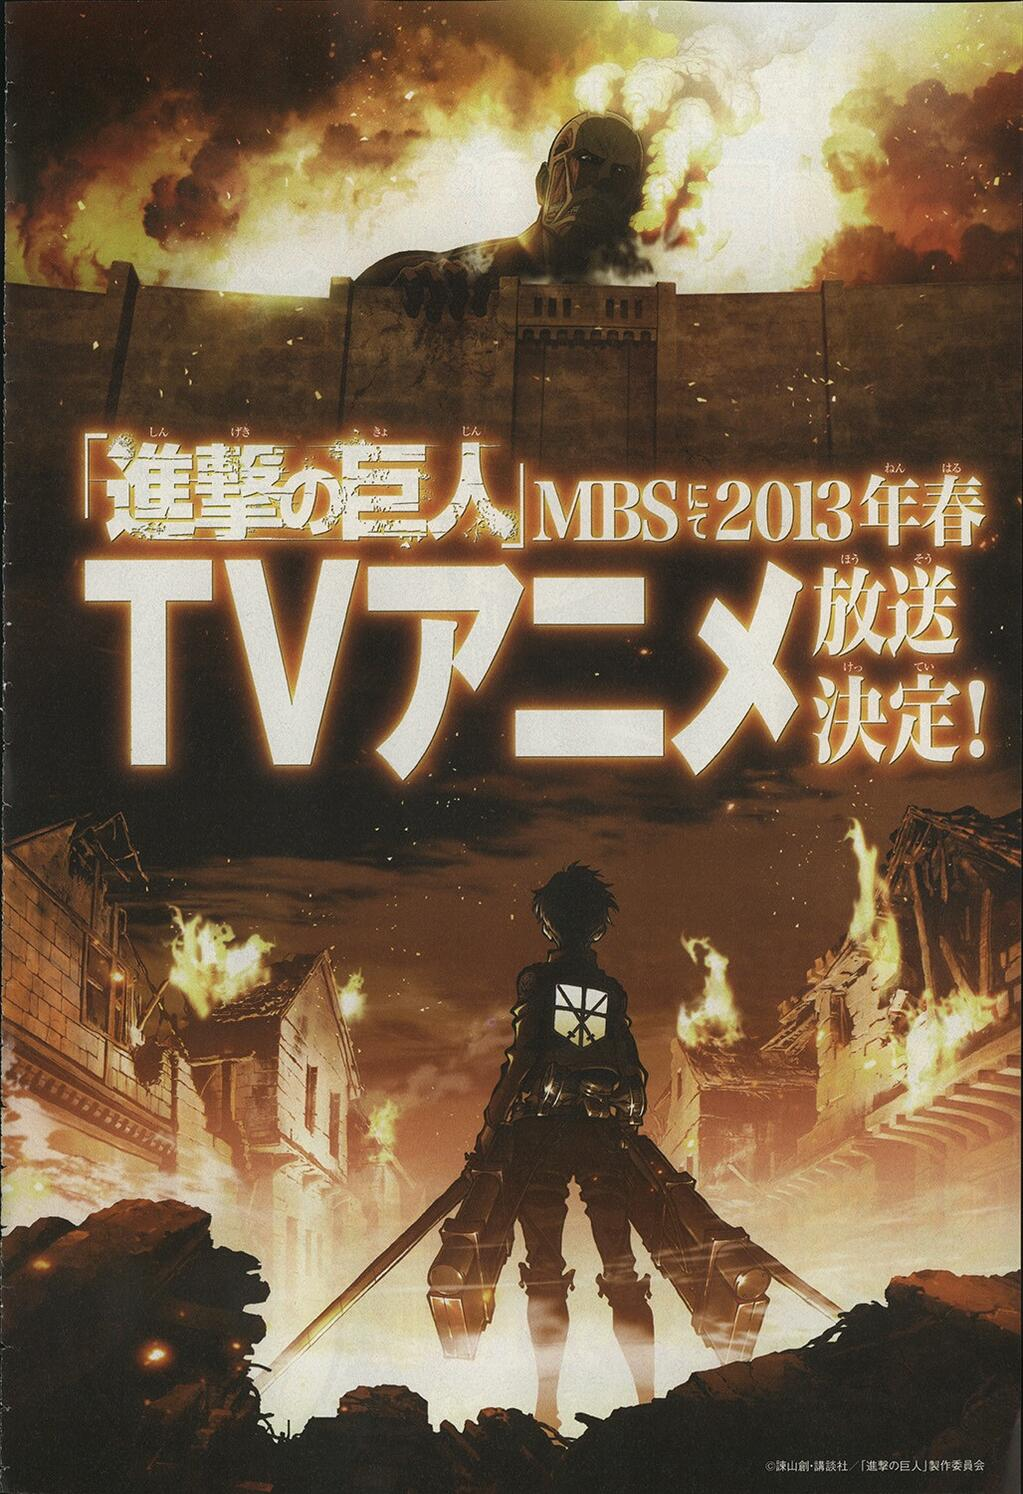 Shingeki no Kyojin anime announced pic 1